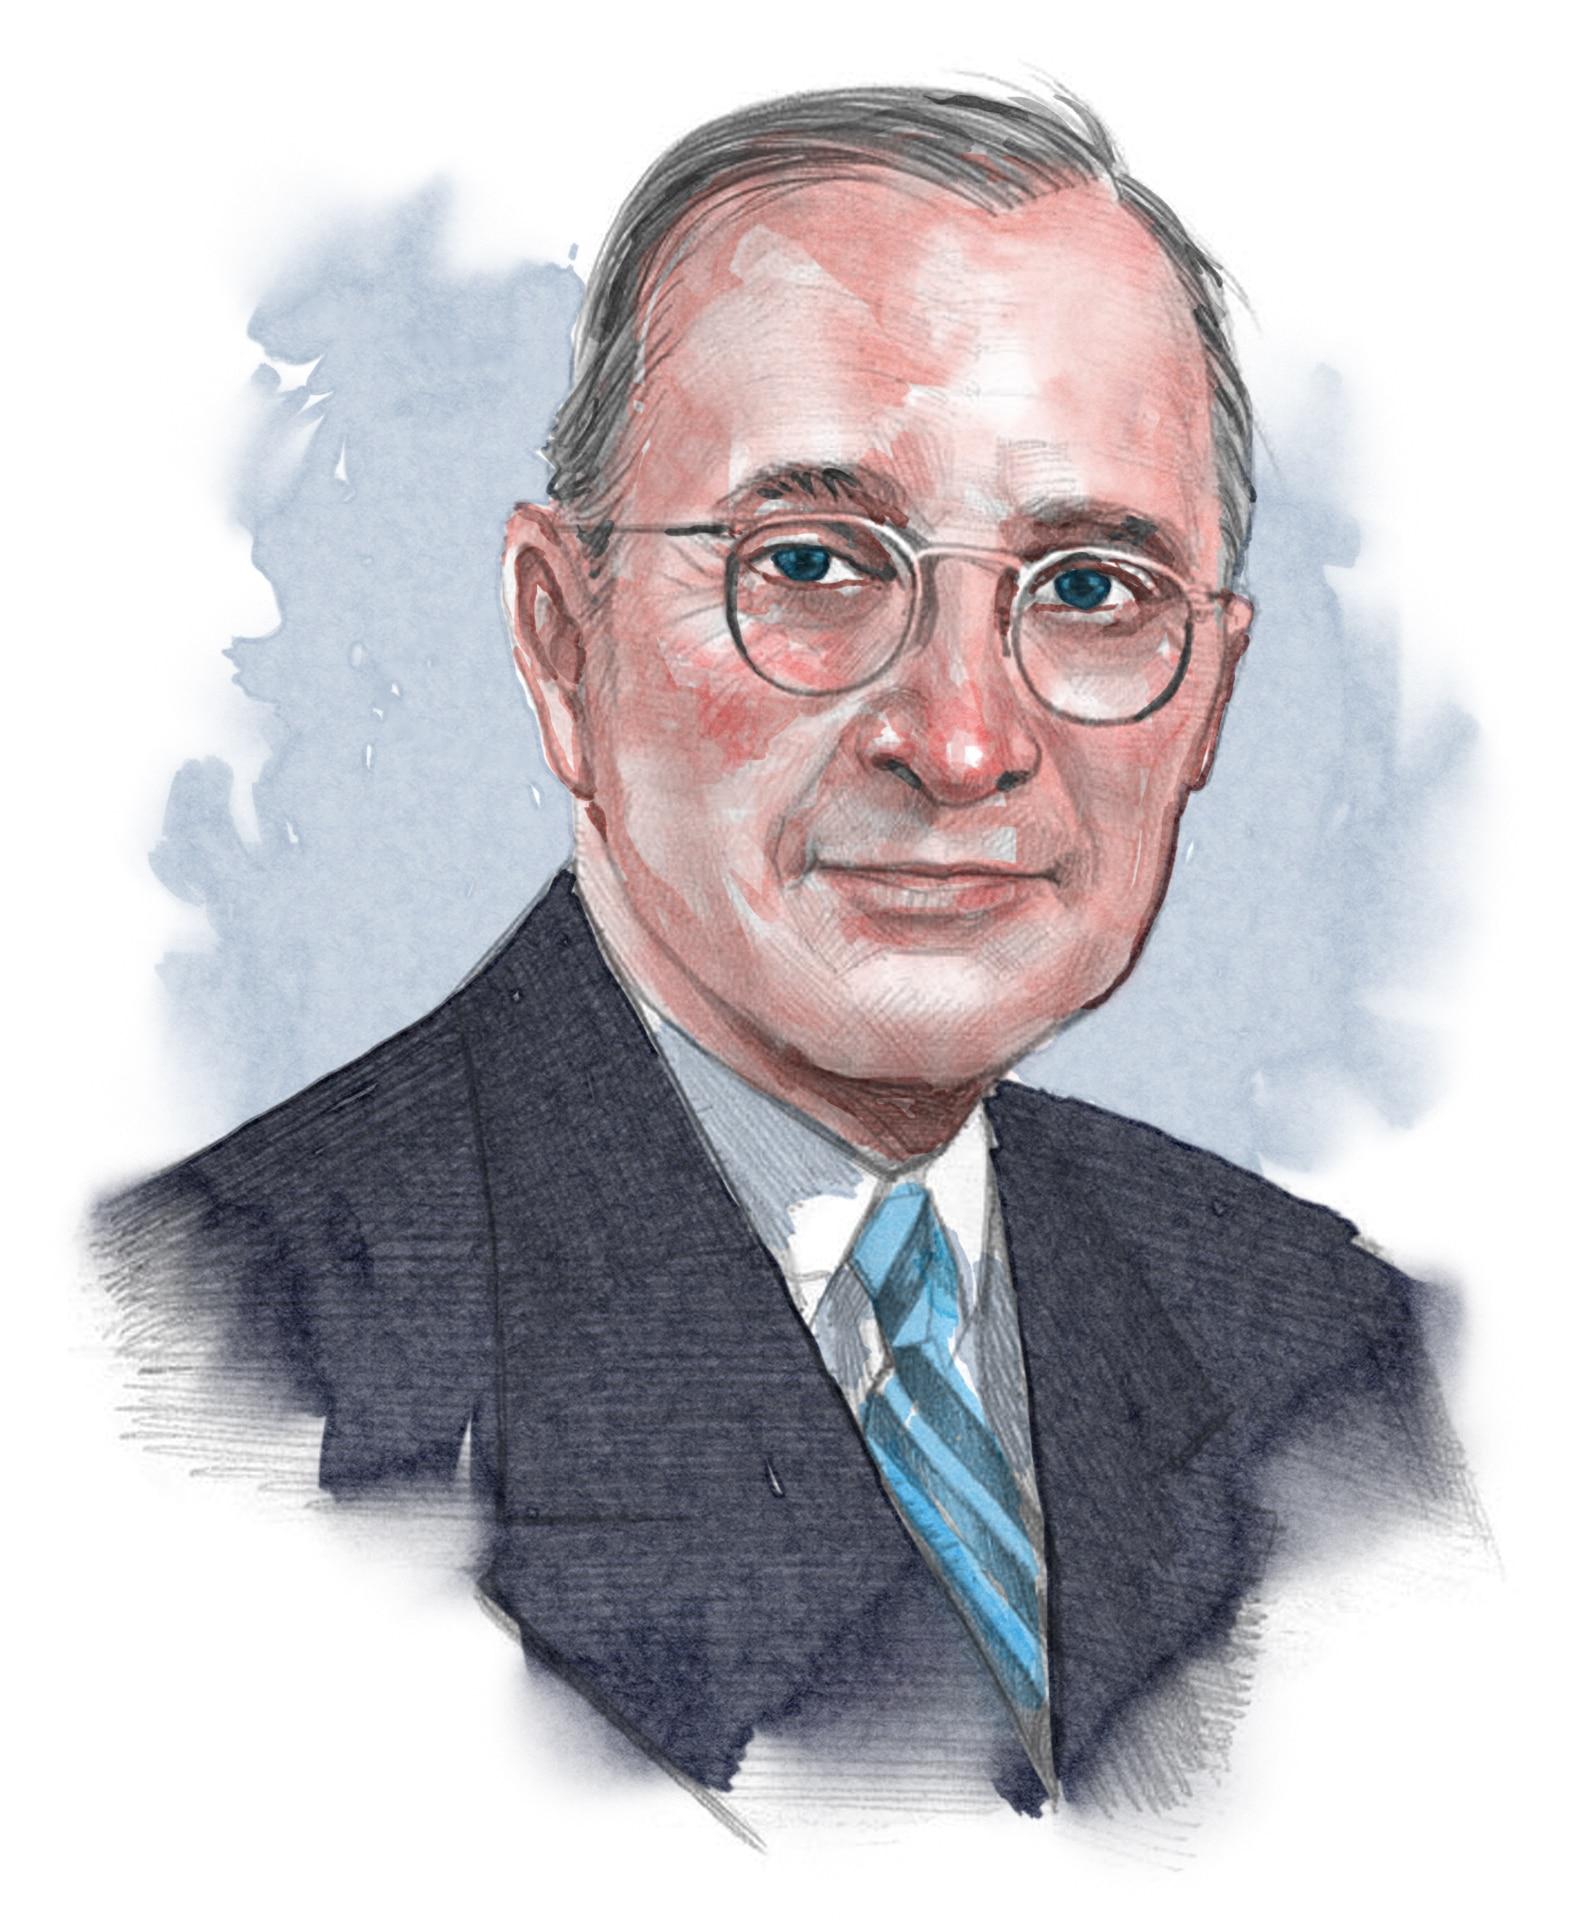 Illustrated image of President Truman (© siteseen.info)